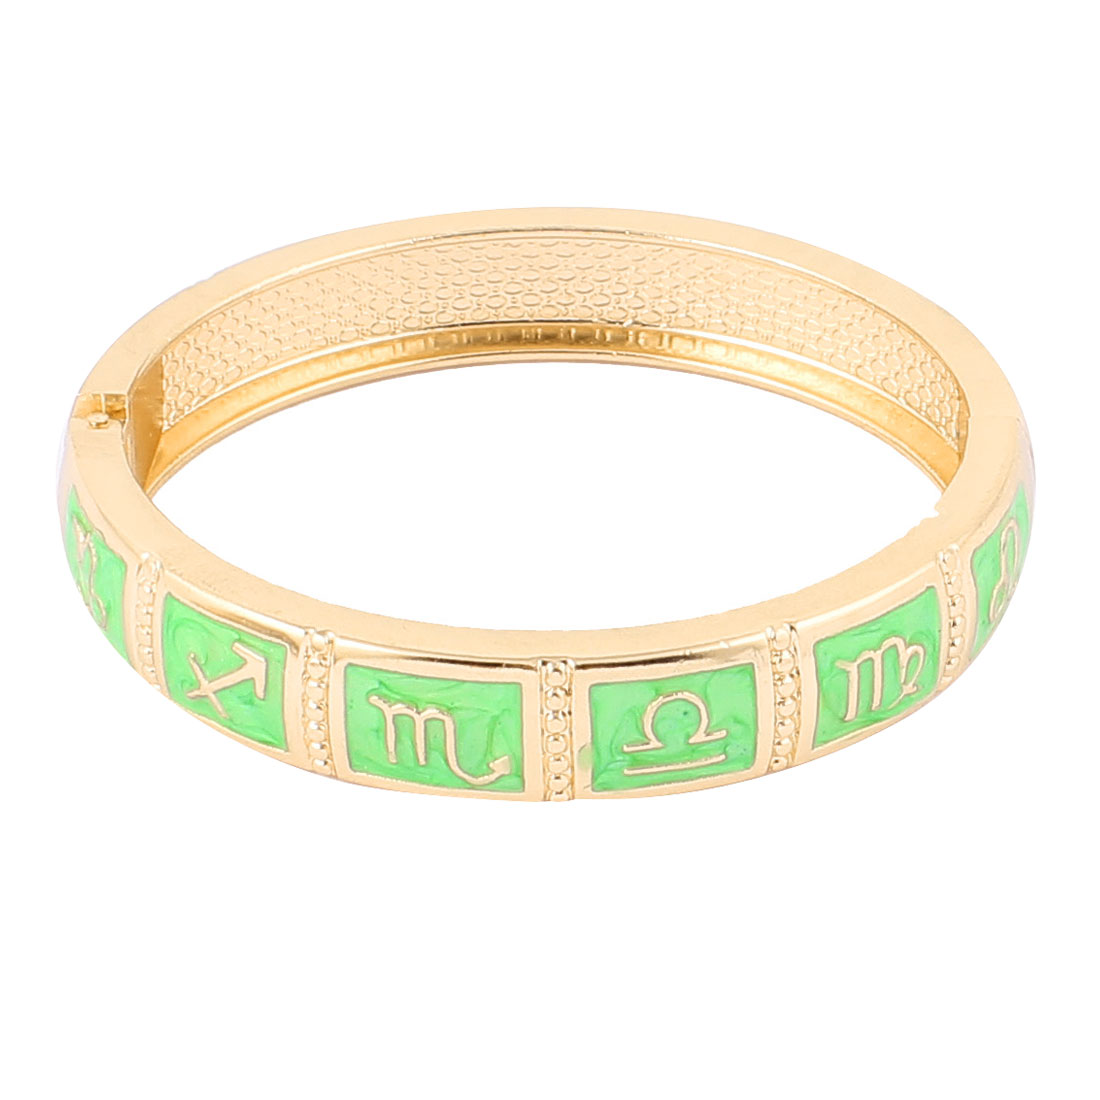 "Round Wrist Gold Tone Metal Green 12 Constellations Pattern Bracelet Enamel Bangle 0.4"" Width"